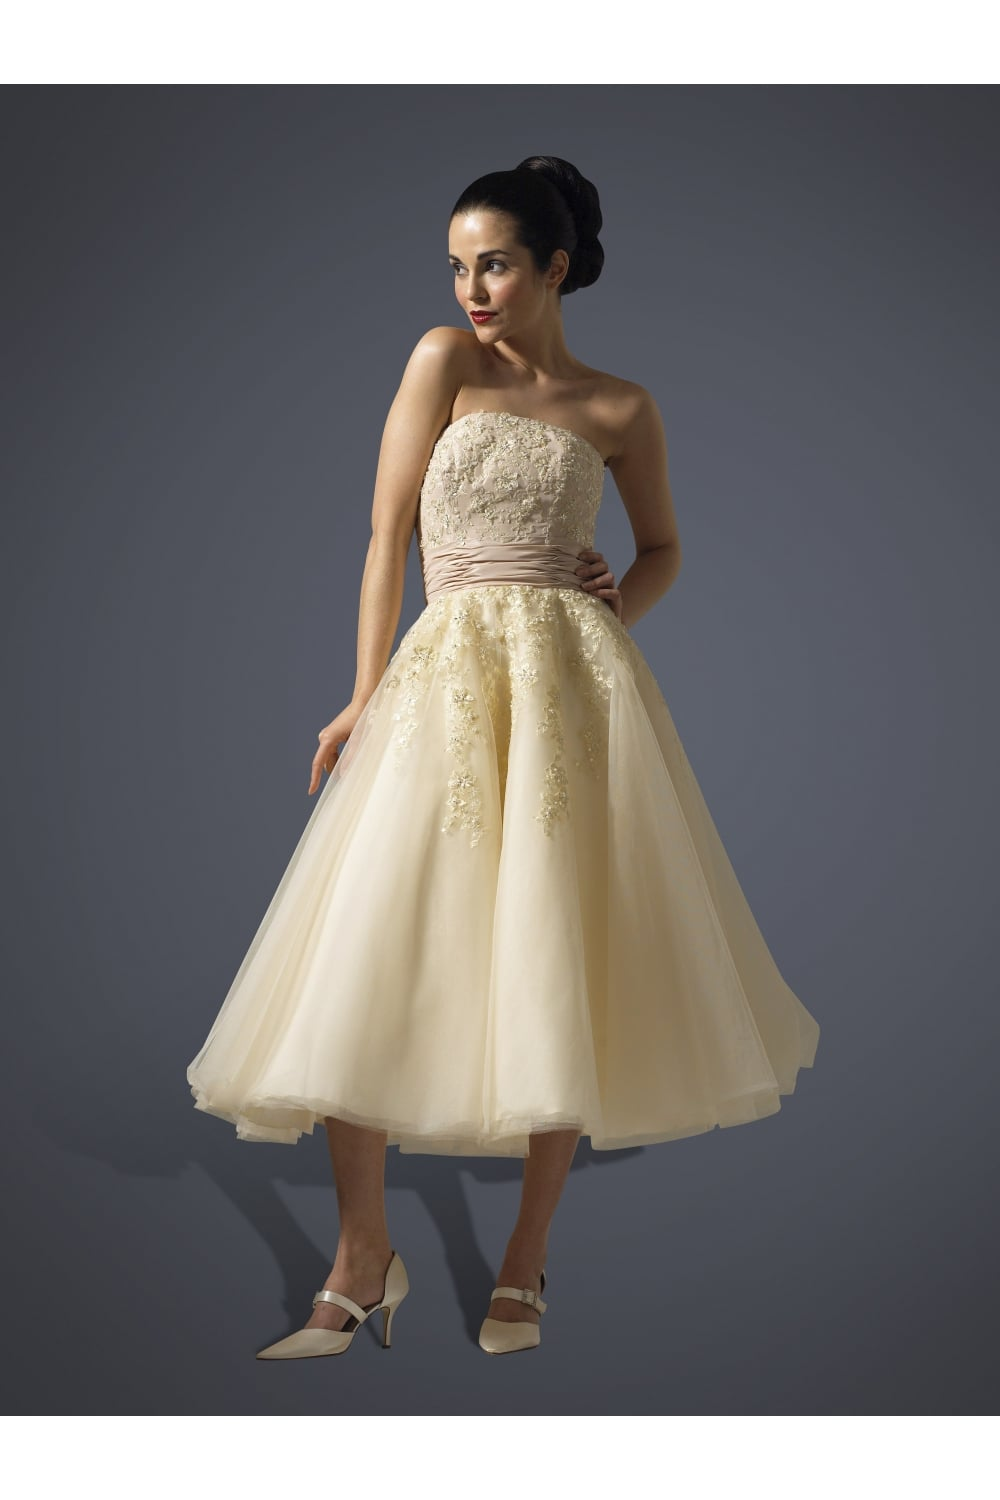 Justina tea length wedding dress 1950s style w925 for Calf length wedding dresses